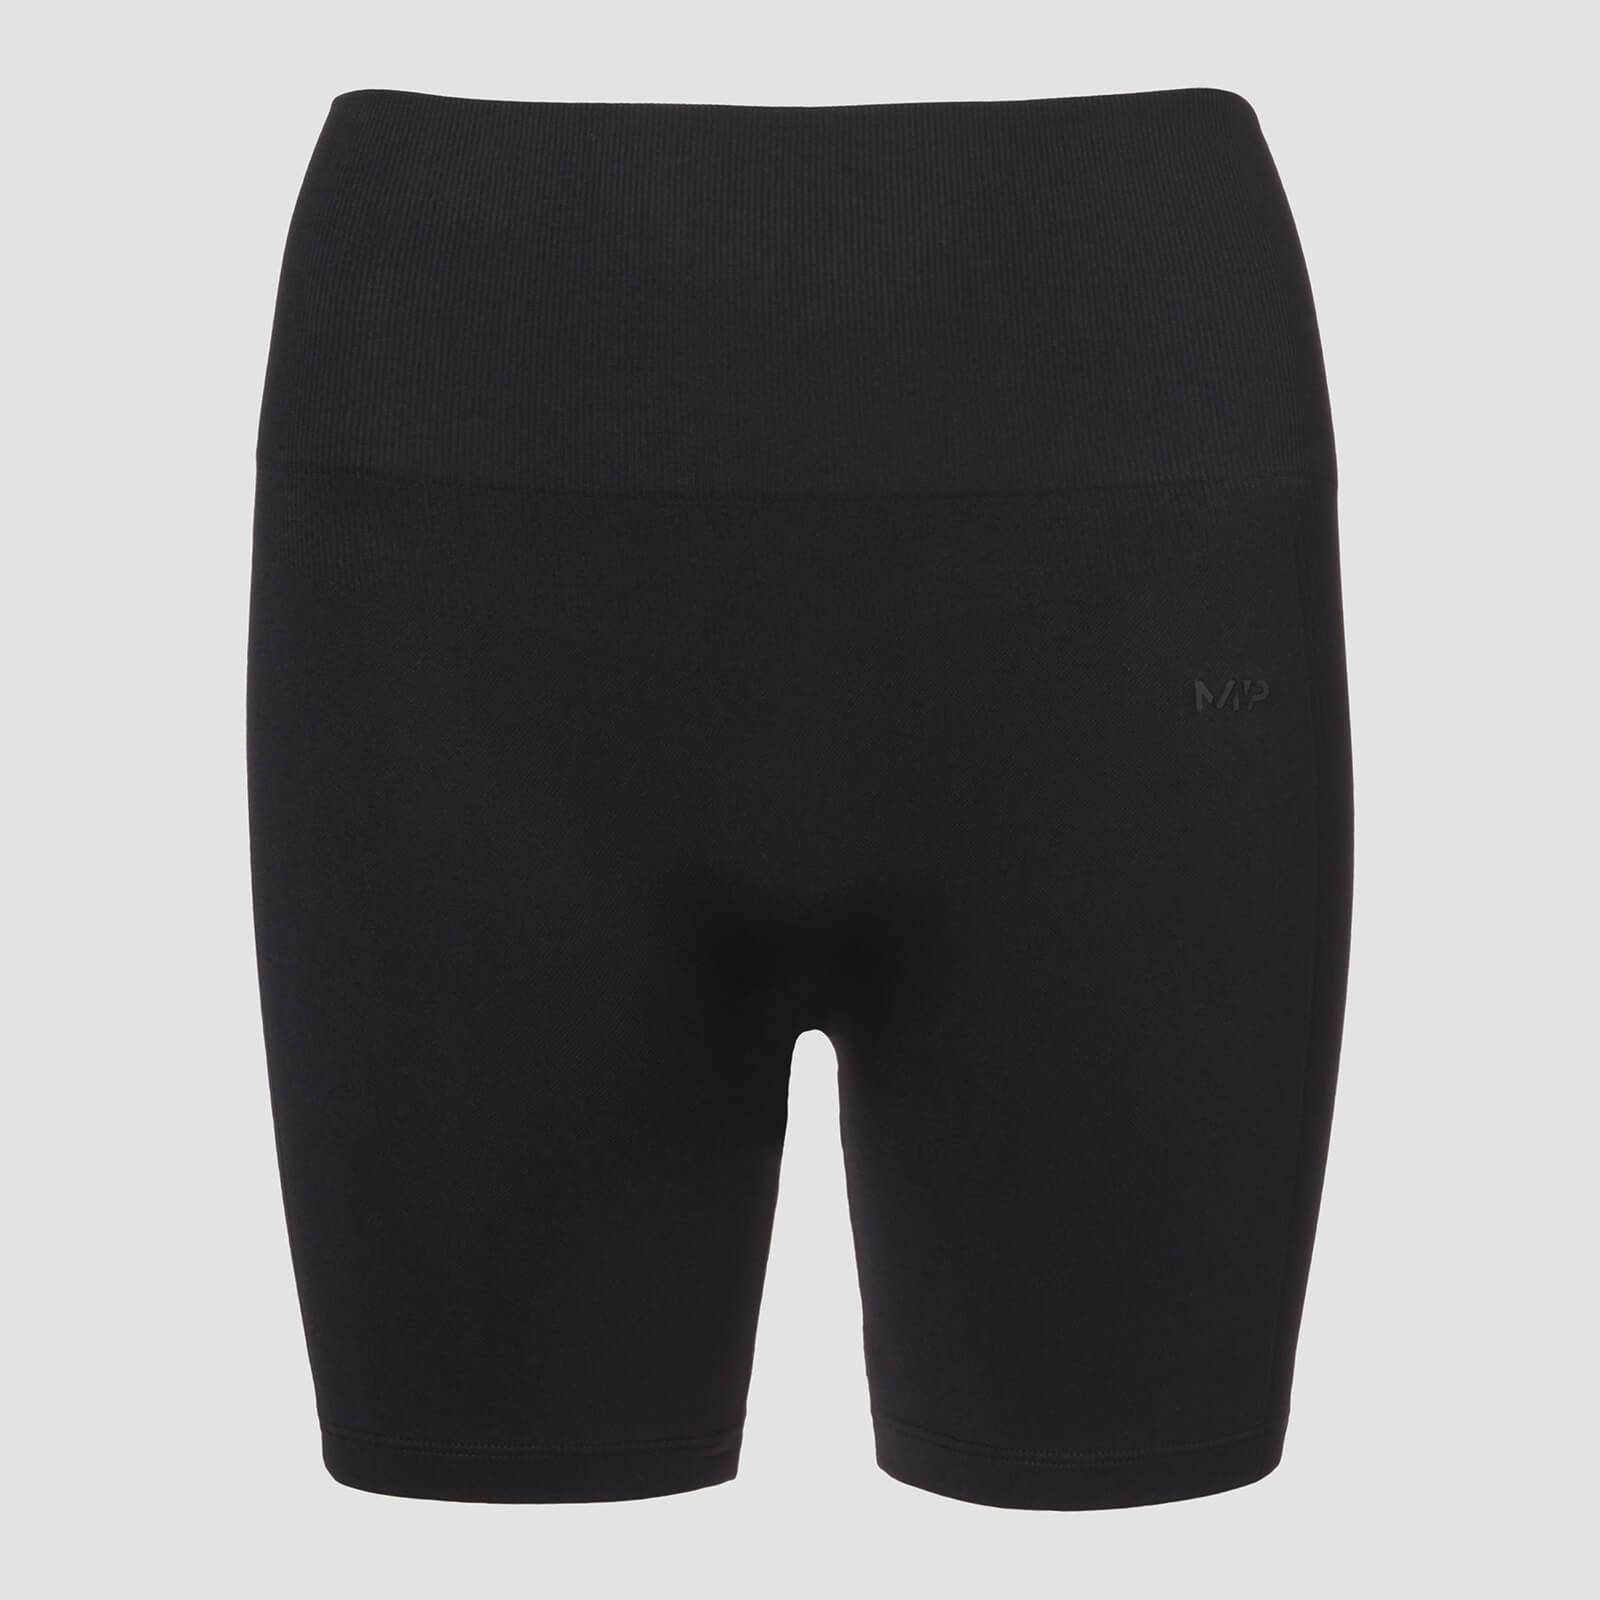 Myprotein MP Women's Shape Seamless Ultra Cycling Shorts - Black - XS